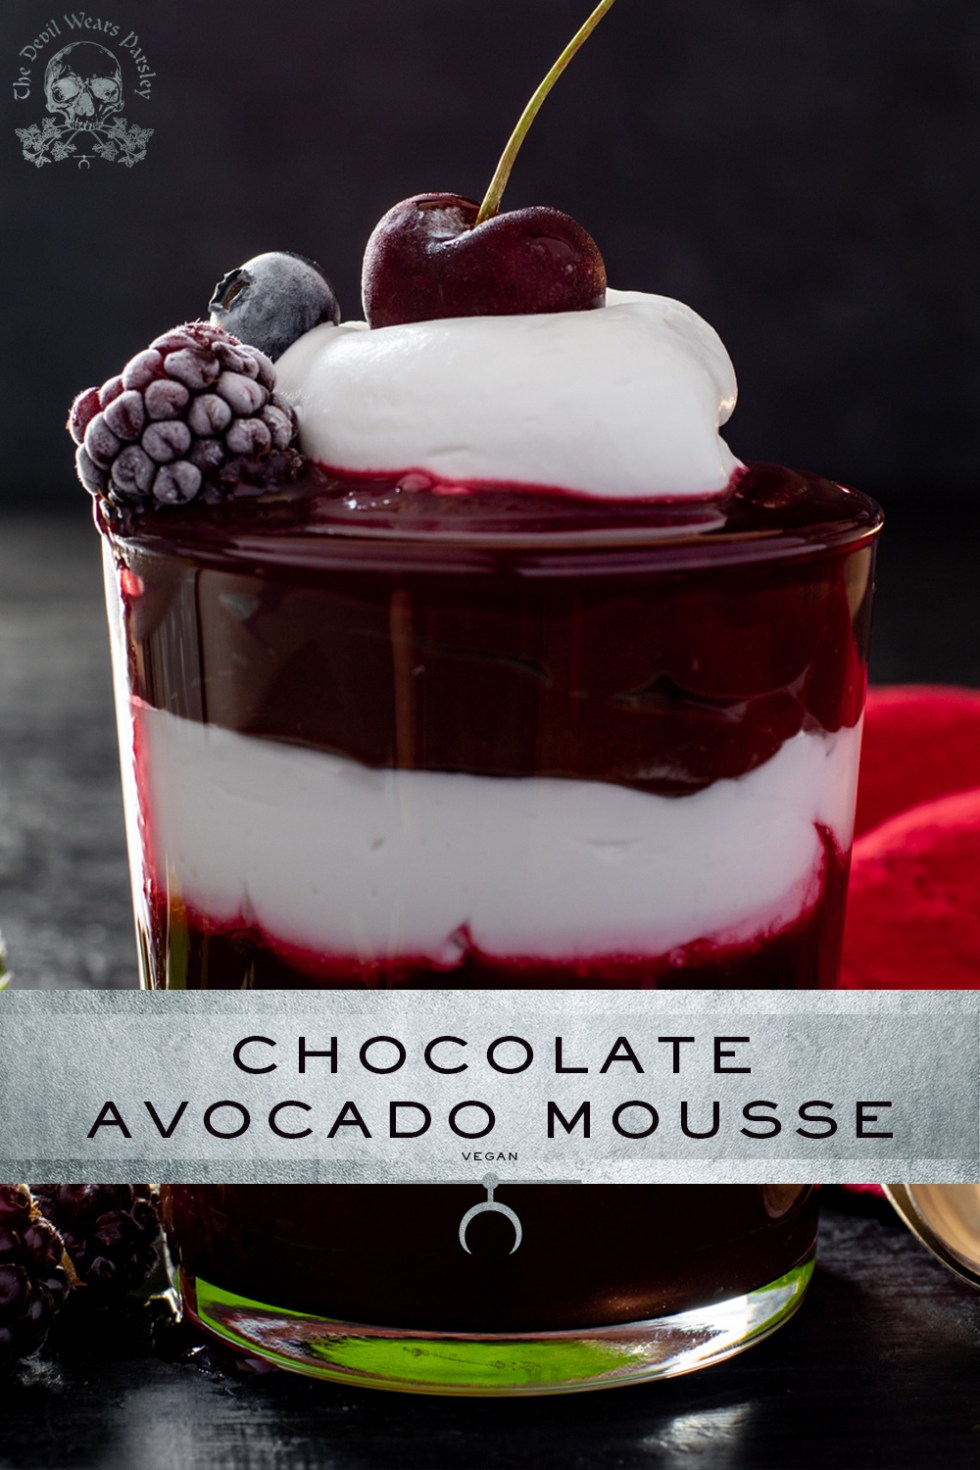 Who would have thunk that avocados could make the most luscious, and believeable chocolate avocado mousse? It doesn't get sexier than this!